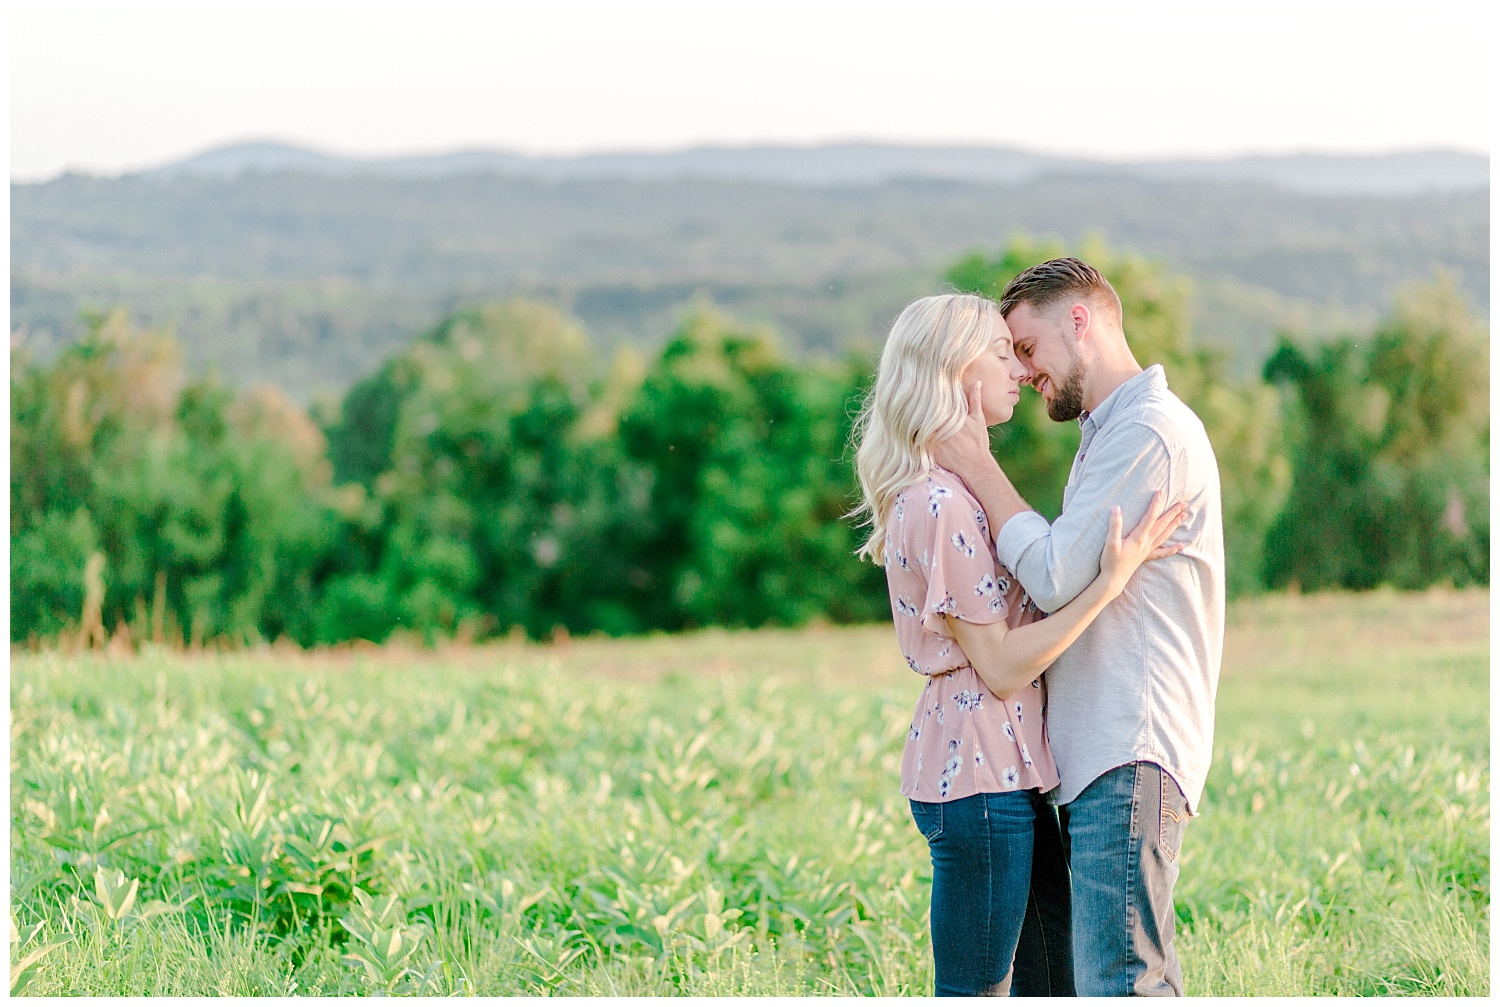 Blue Marsh Lake Reading Pennsylvania flower field golden hour engagement session by PA based wedding and lifestyle photographer Lytle photography_0021.jpg